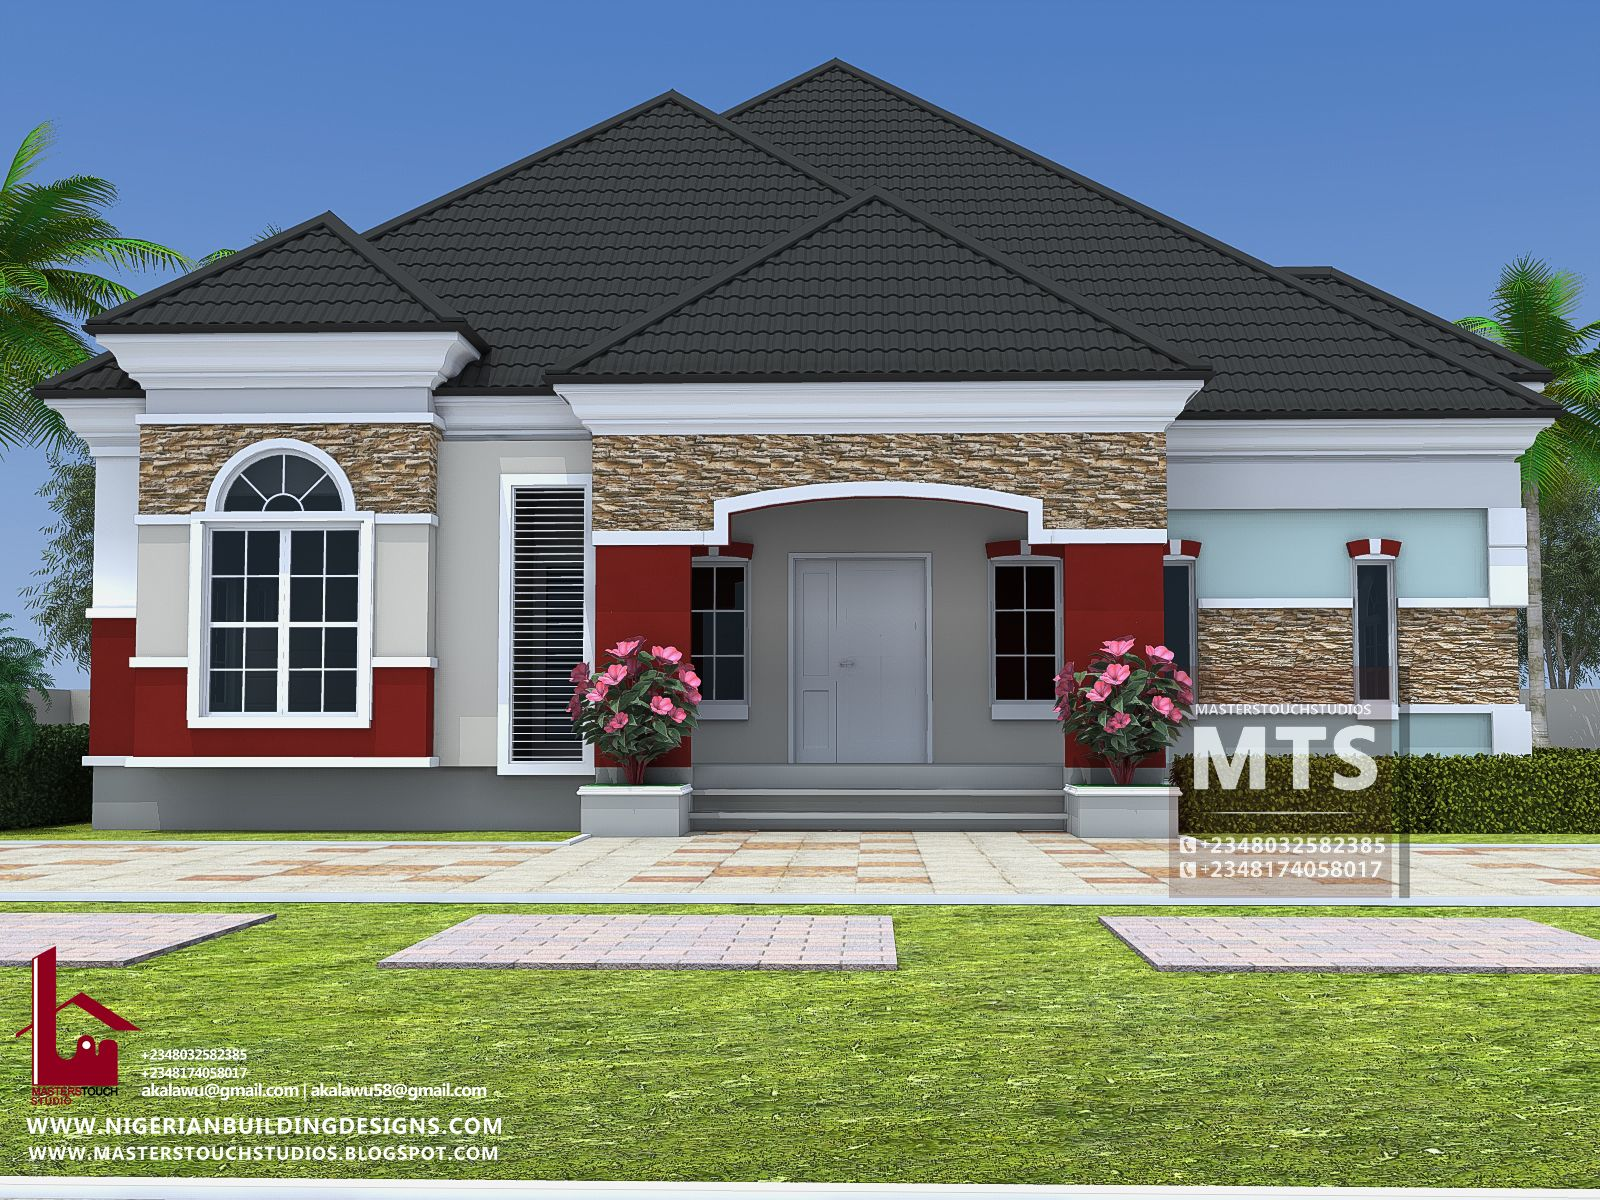 Homes houses nigeria beautiful bungalow architecture design exterior